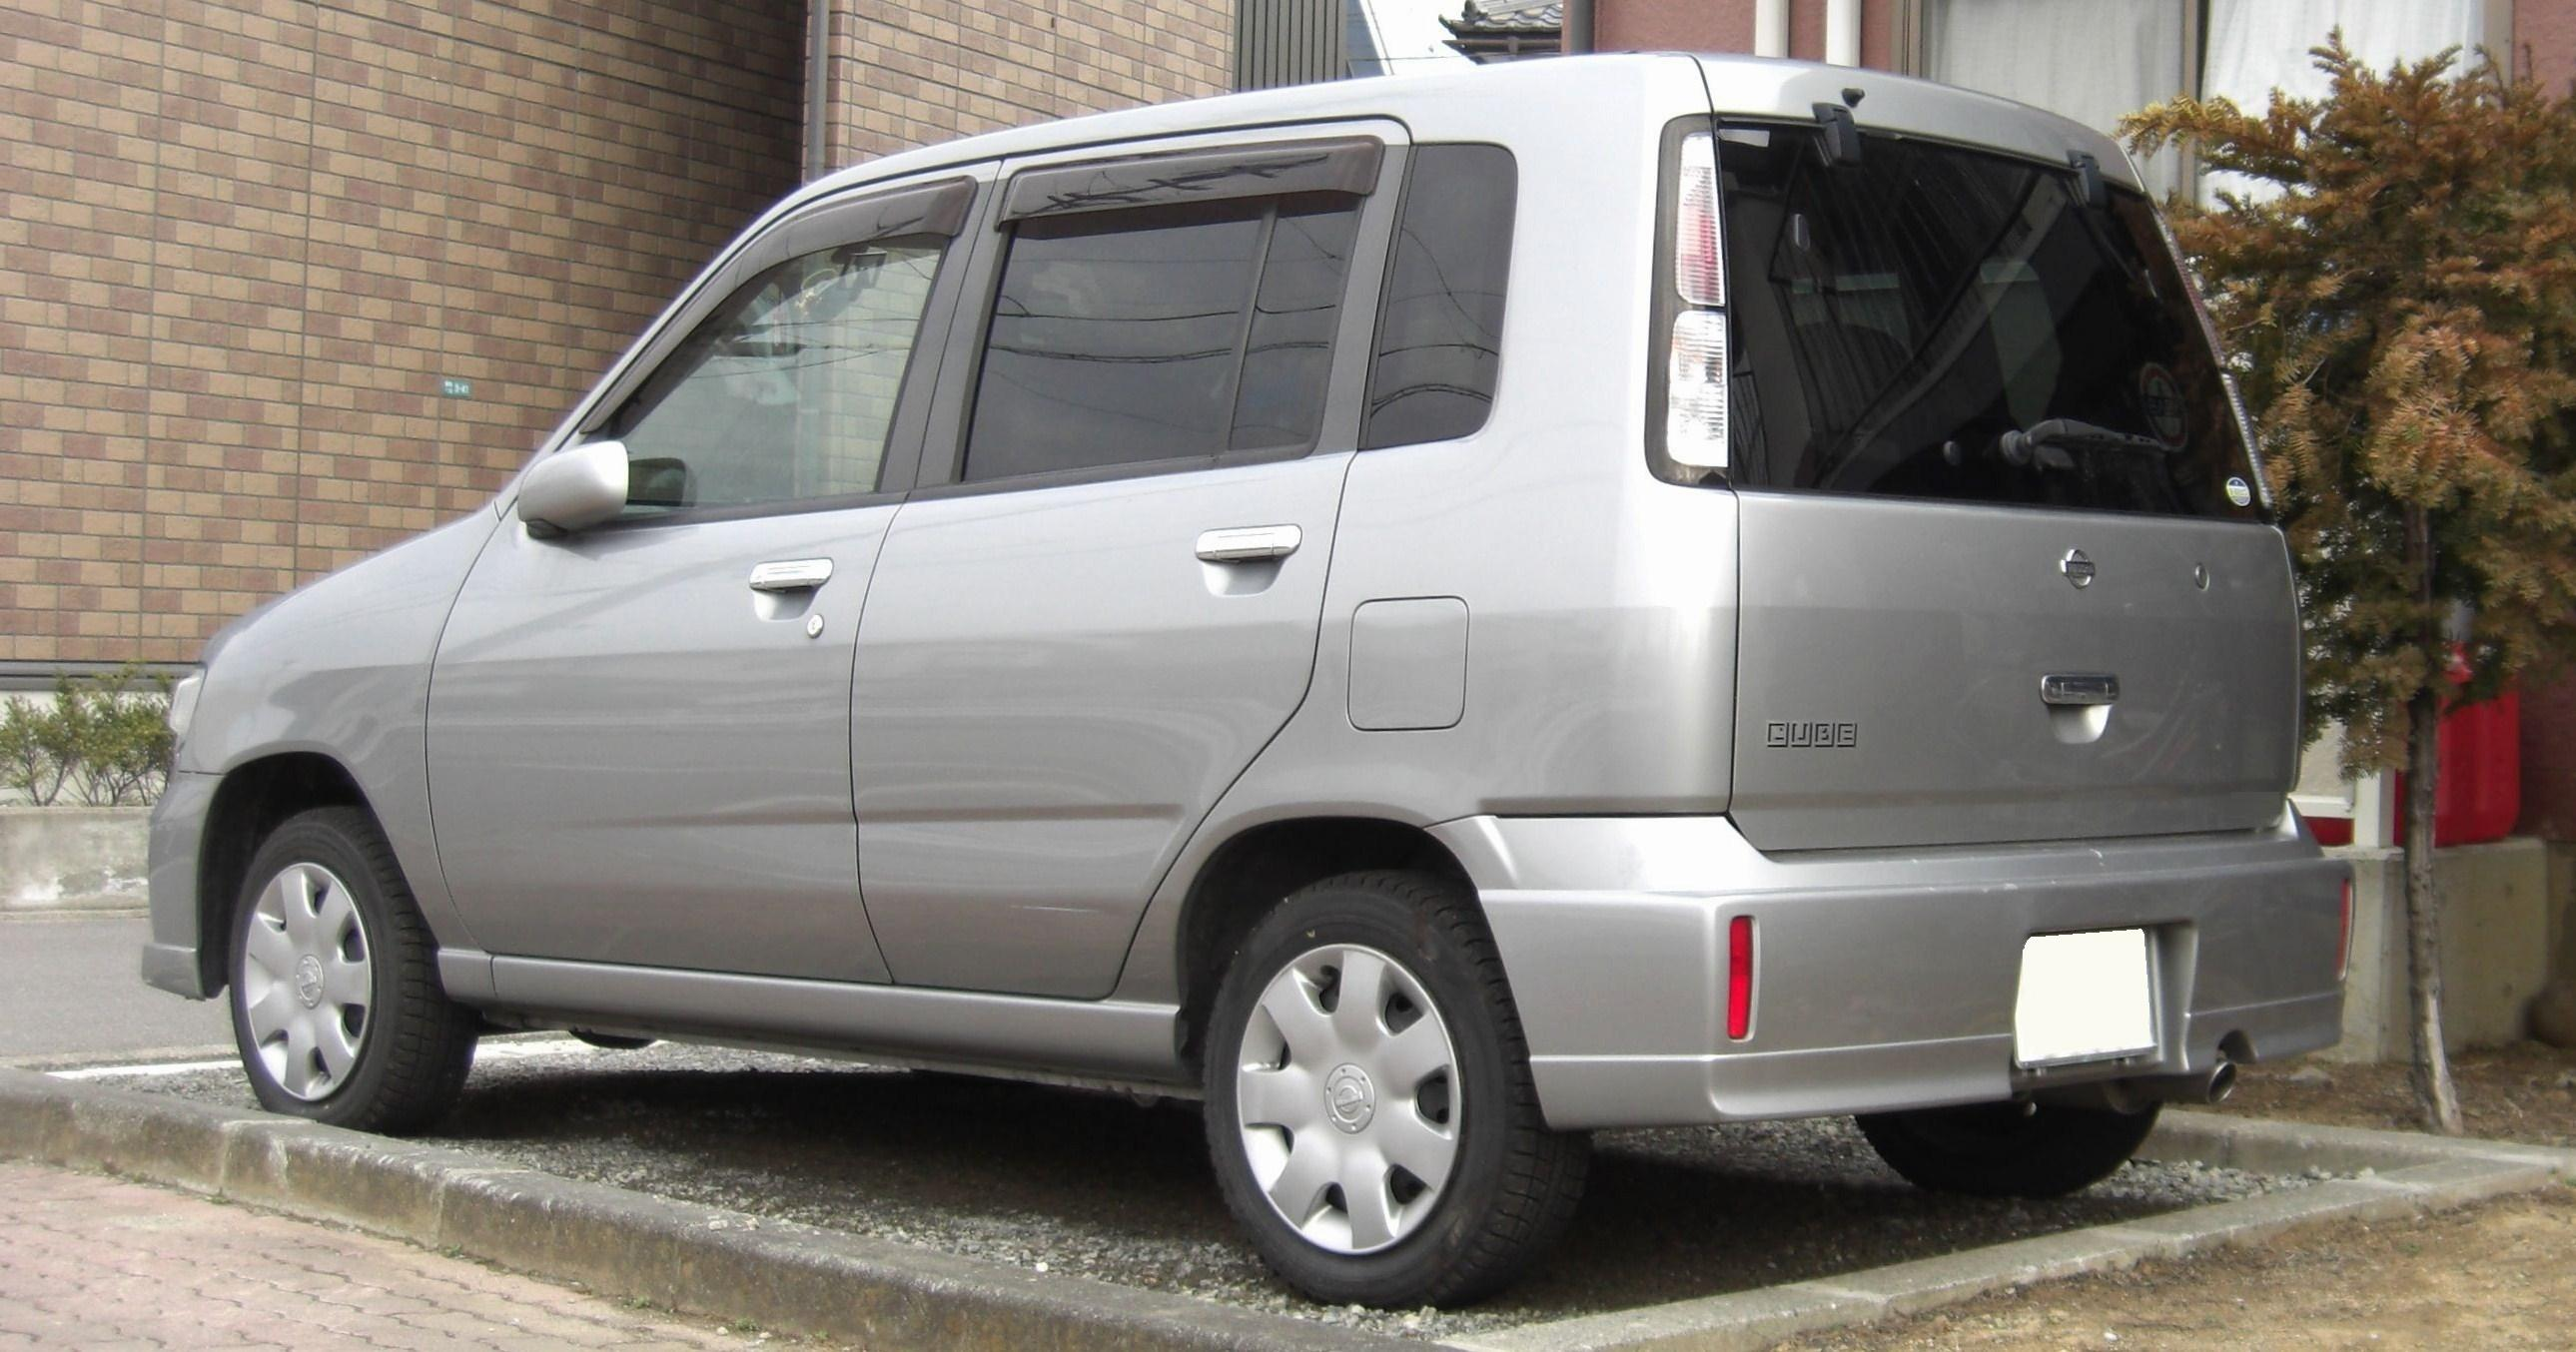 NISSAN CUBE - Getting the right insurance for your Nissan Cube  |2002 Nissan Cube